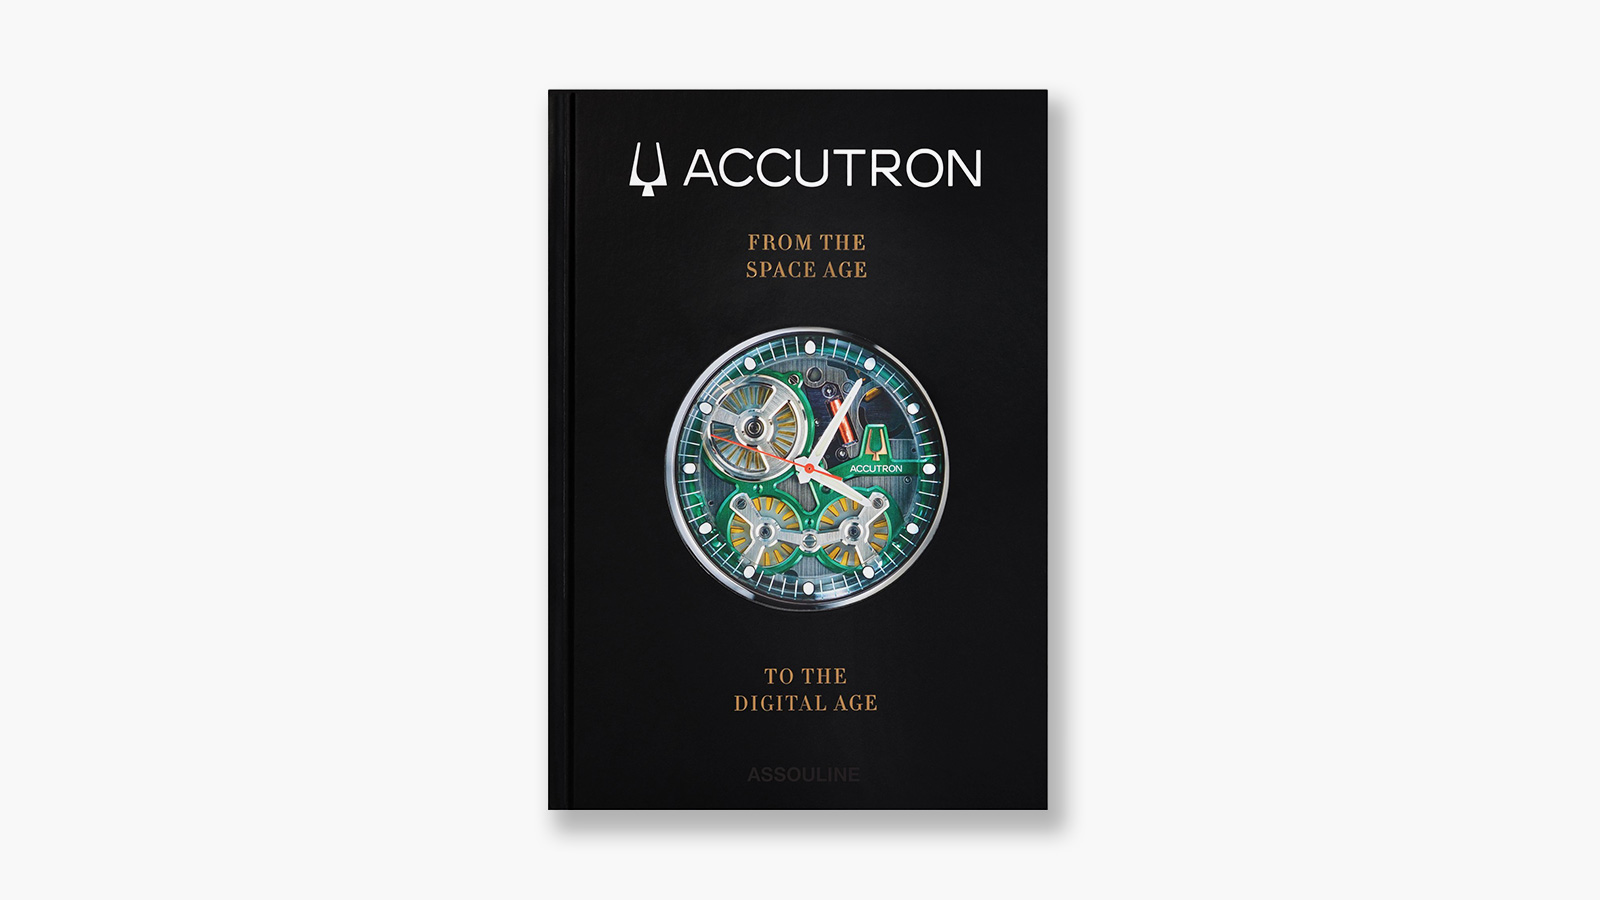 'Accutron: From the Space Age to the Digital Age' by Carl Gustav Magnusson